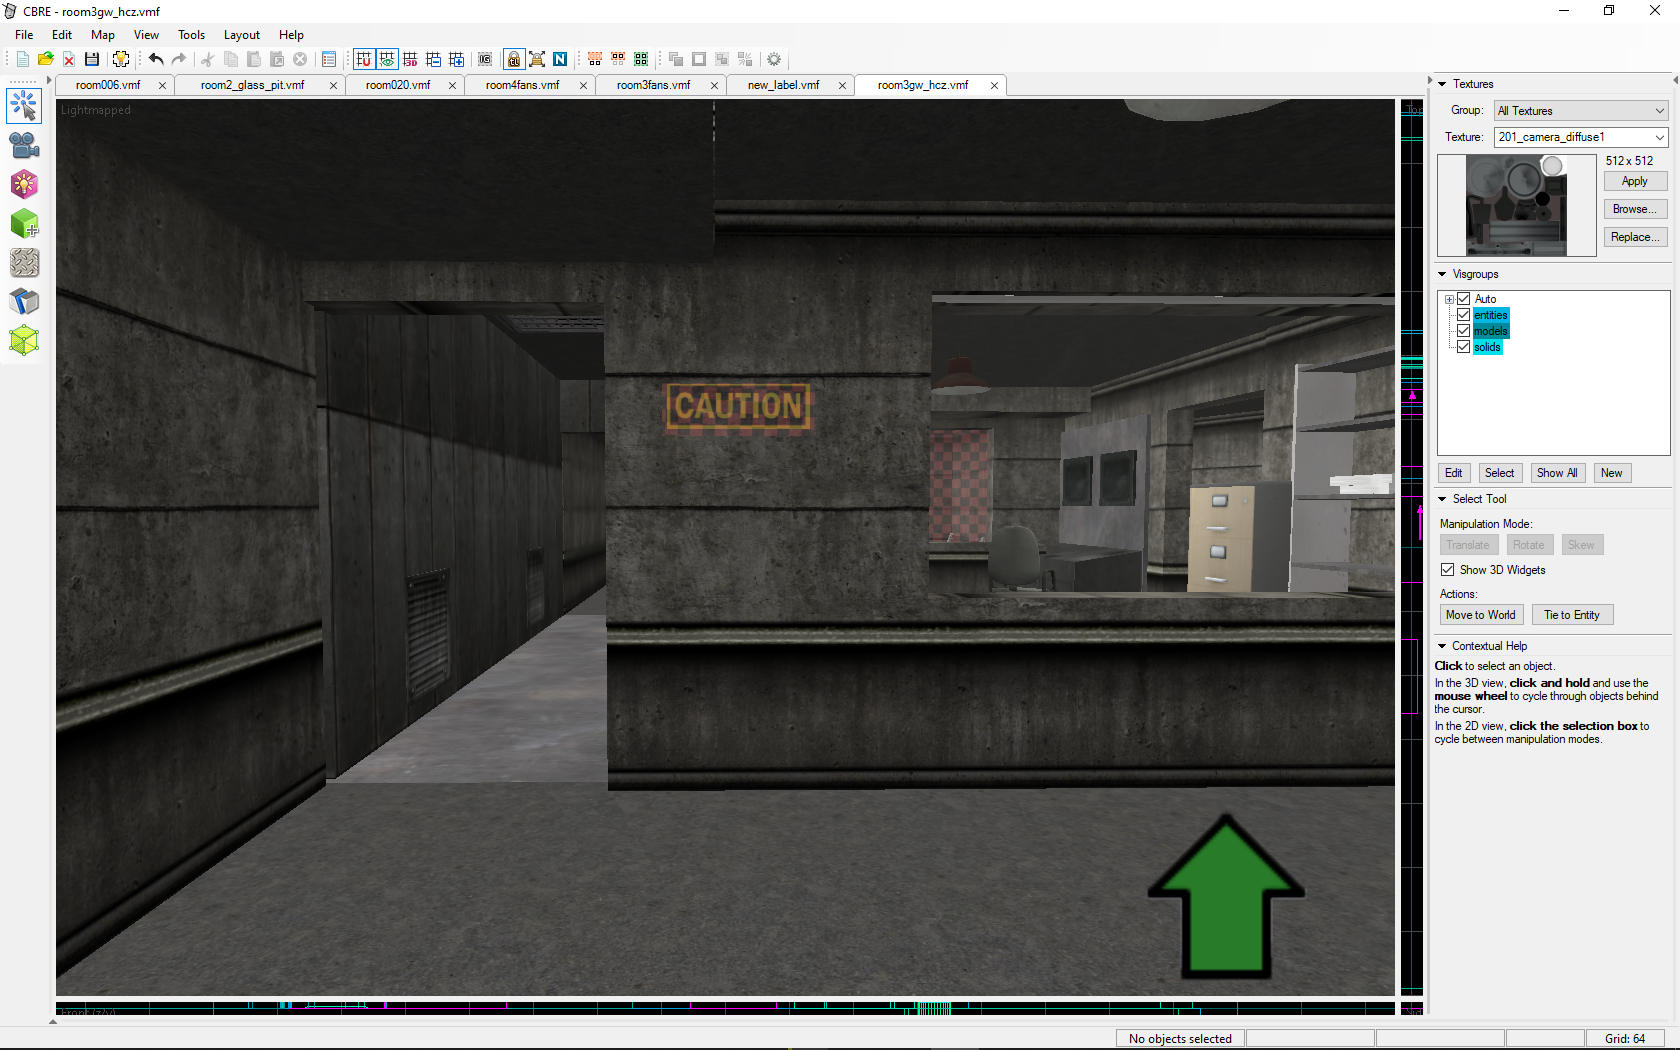 room3gw_hcz -- this is name of this new room, its a 3-way room with a airlock in HCz style